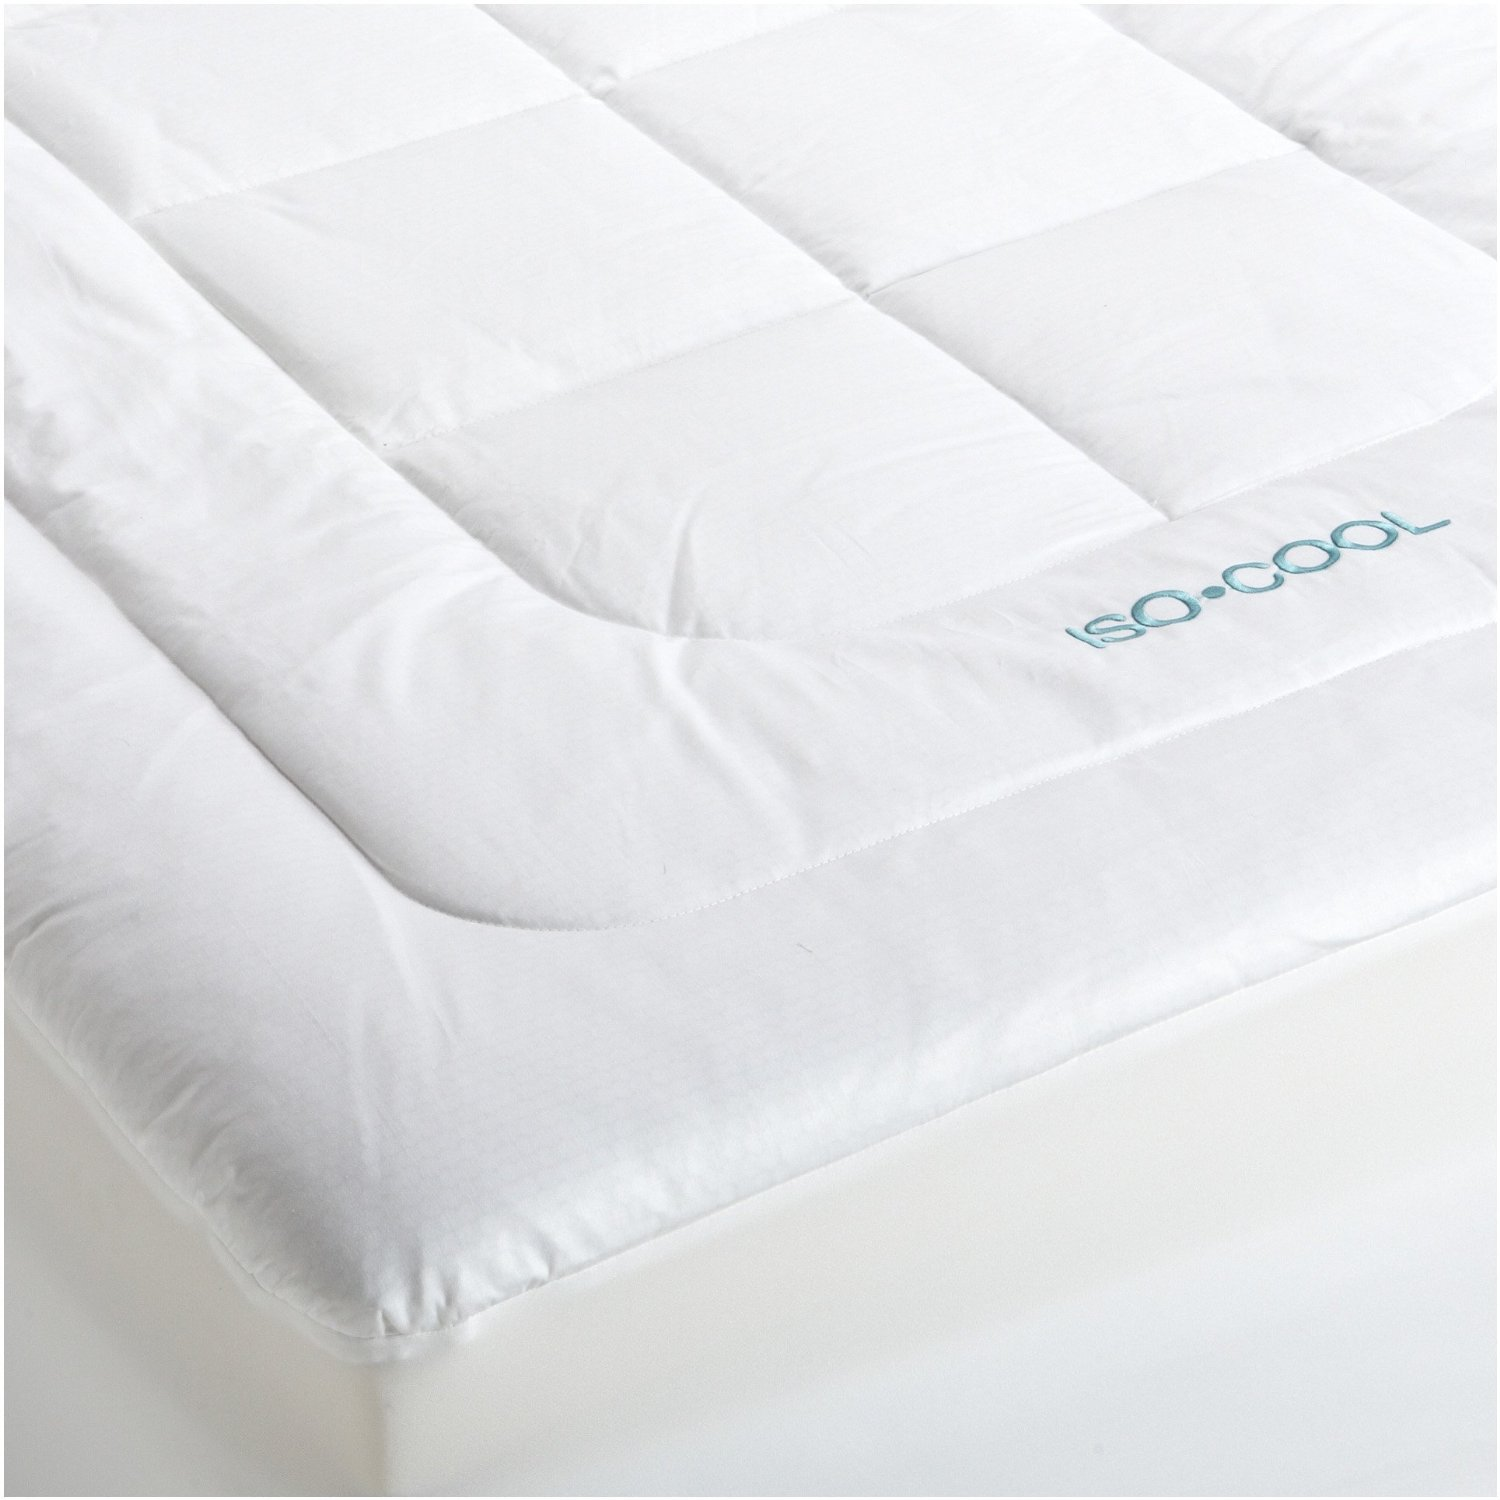 matress data best sleepers side mattress sleeper for new